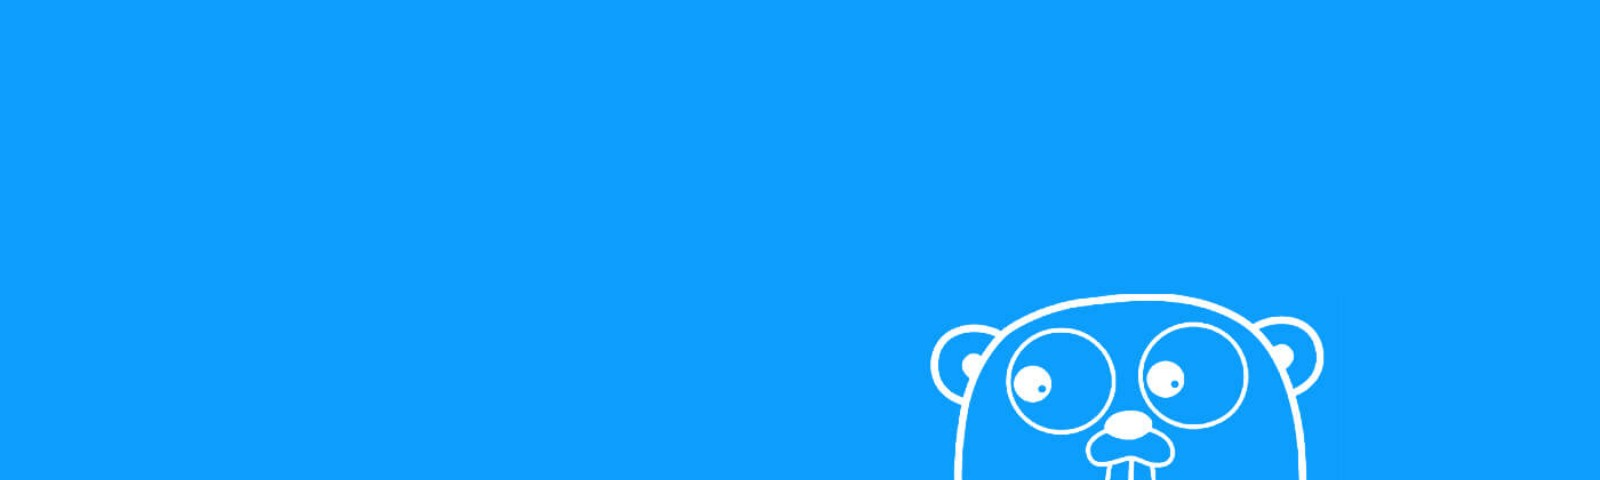 Golang – Silicon Barn | The Official Blog From Multiplay's